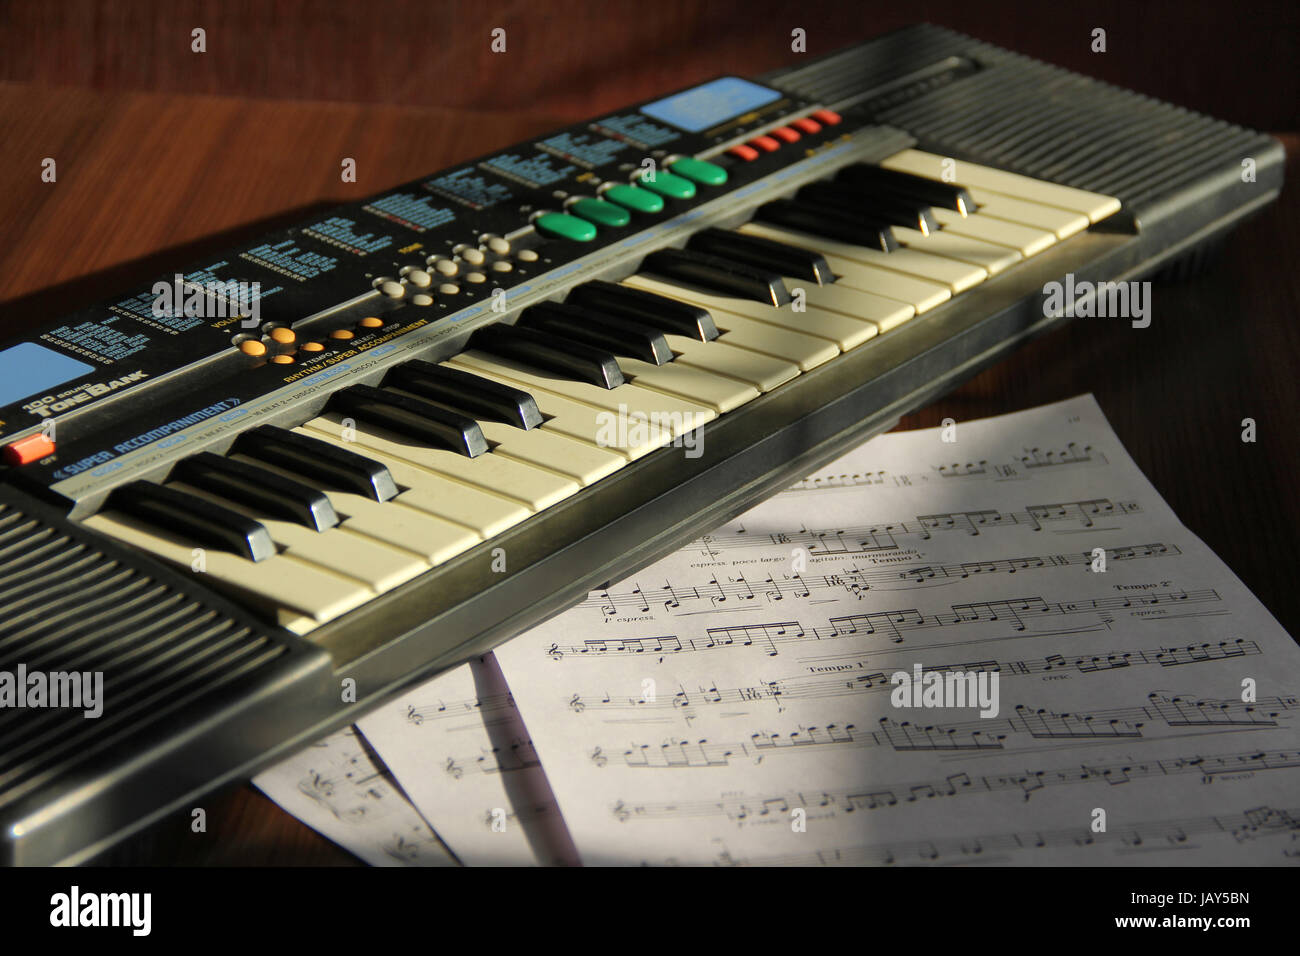 Close view of Synthesizer with musical notes - Stock Image